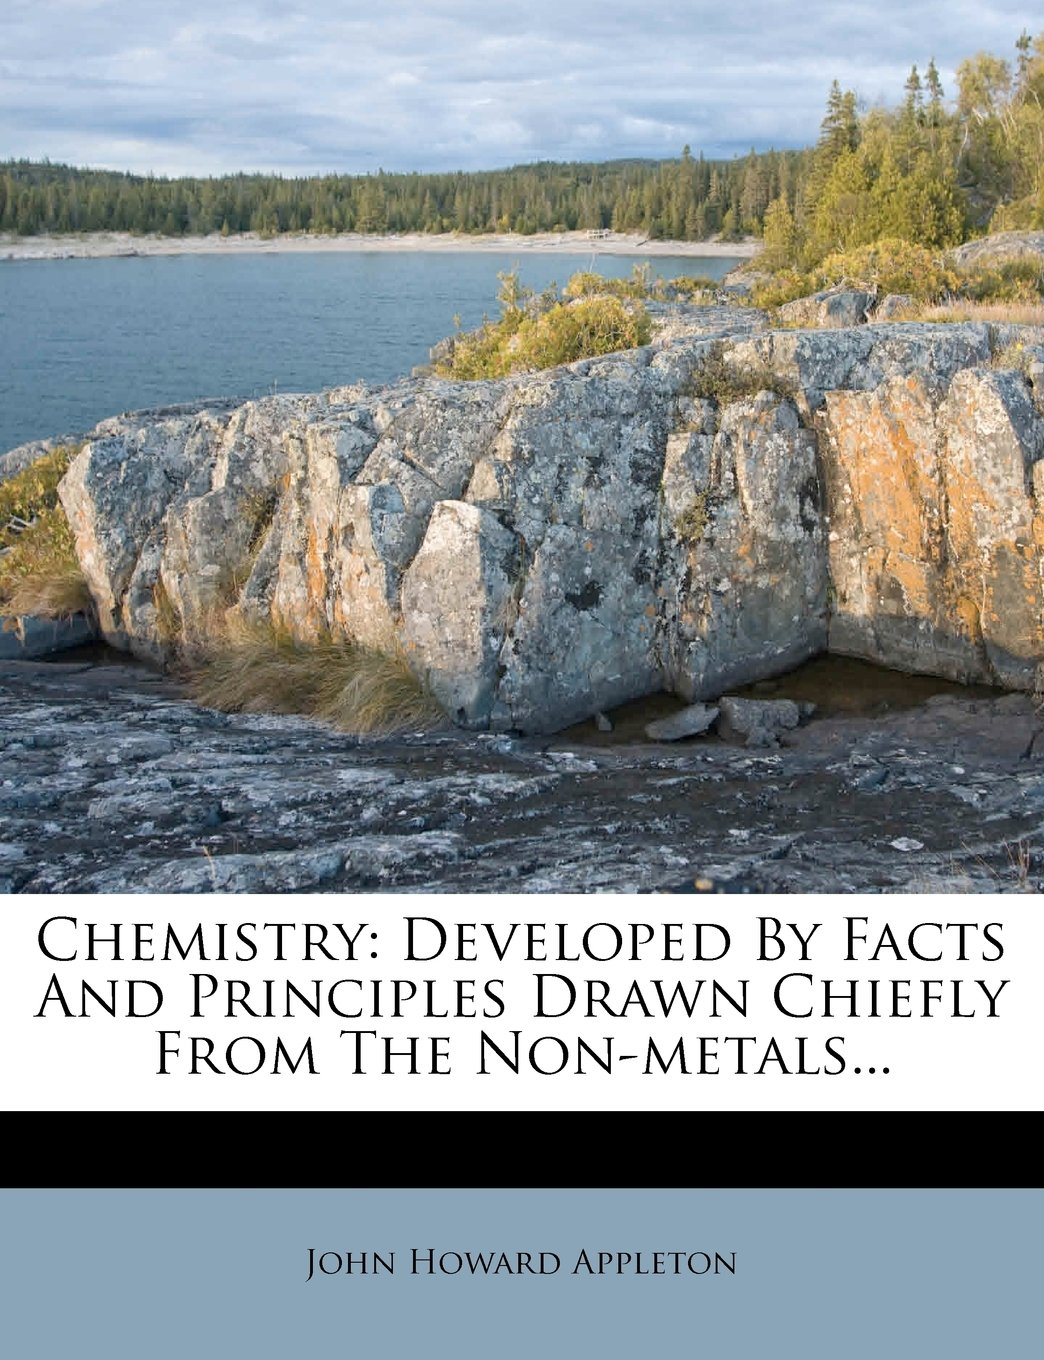 Chemistry: Developed By Facts And Principles Drawn Chiefly From The Non-metals... PDF